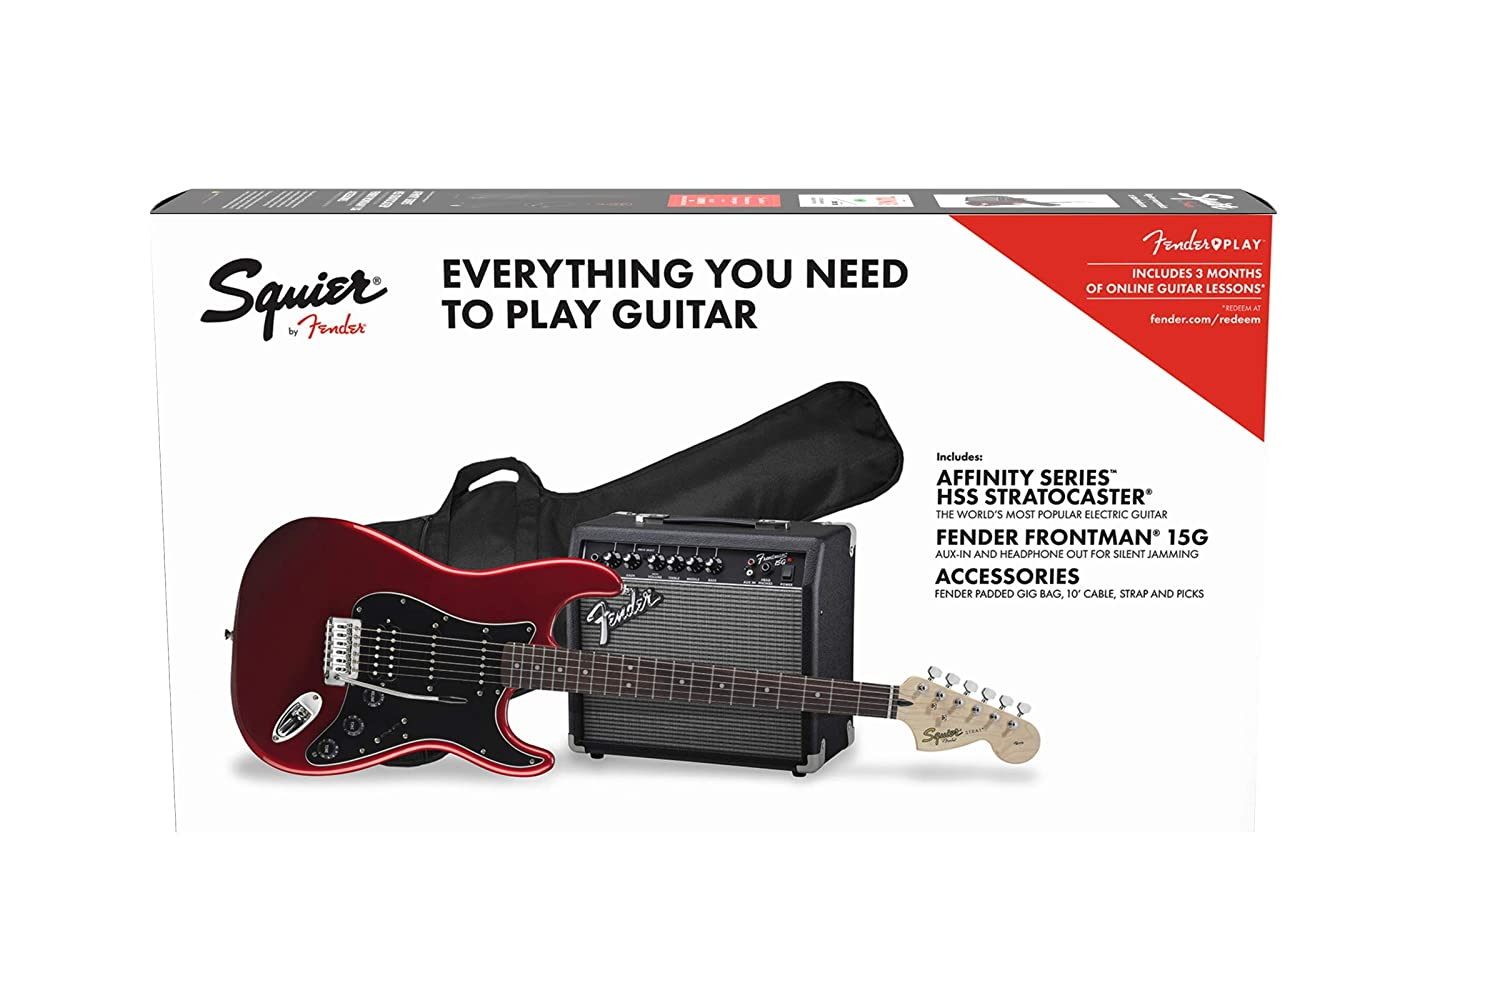 Fender Affinity Stratocaster HSS Pack Candy Apple Red + Frontman 15G + Funda: Amazon.es: Electrónica